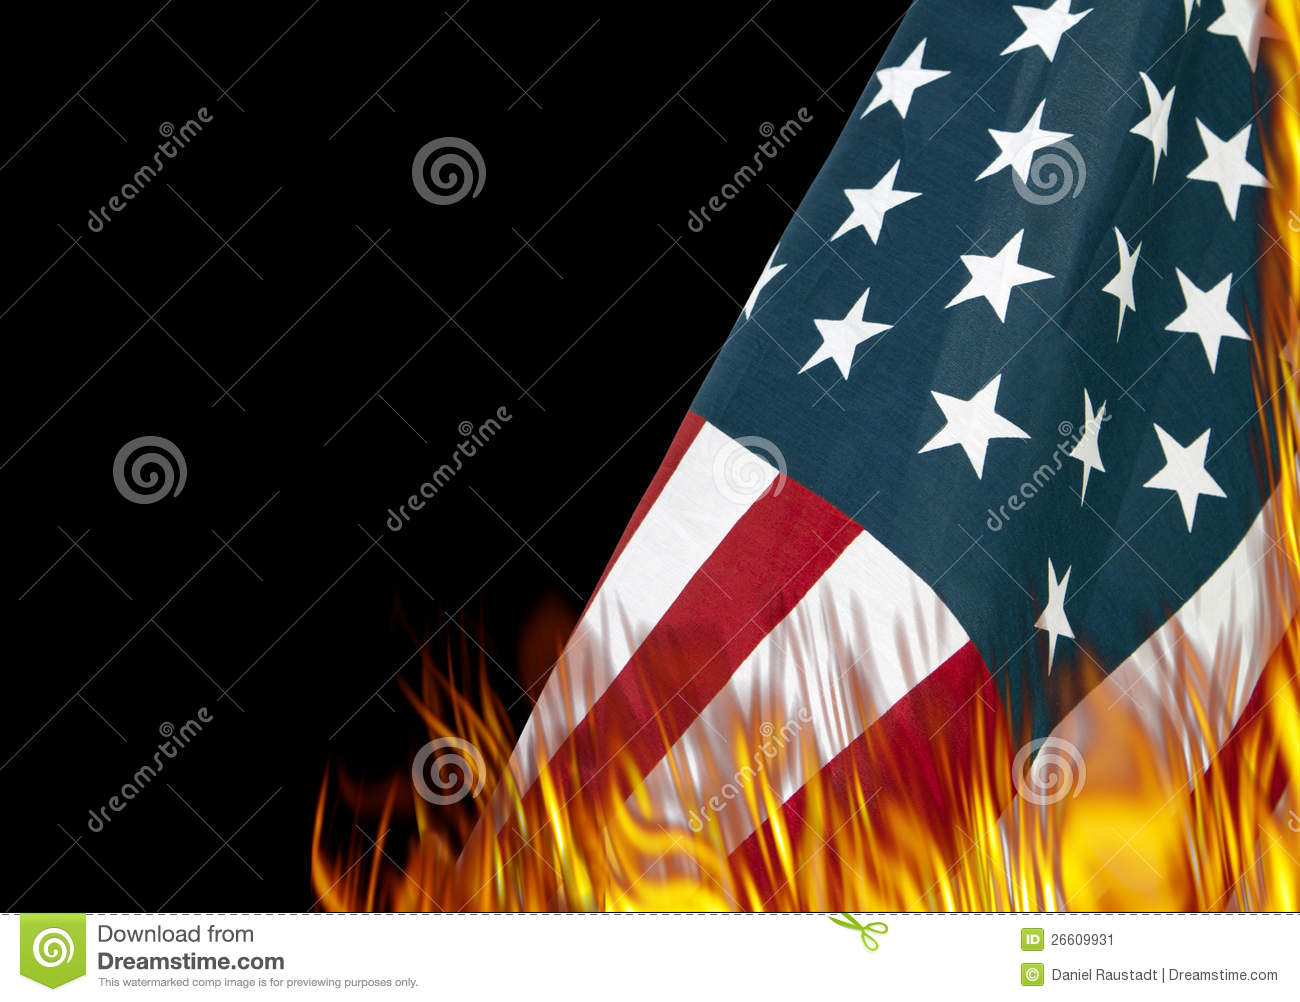 the issue of the burning of the flag of united states Previous to flag day, june 14, 1923 there cheating on an exam were no the major causes of the instability of colombia since the 1960s federal or state the role of family honor in hamlet and titus andronicus regulations governing an analysis of the theory of evolution in the origin of species by charles darwin display of the united states flag by the old farmer's almanac.